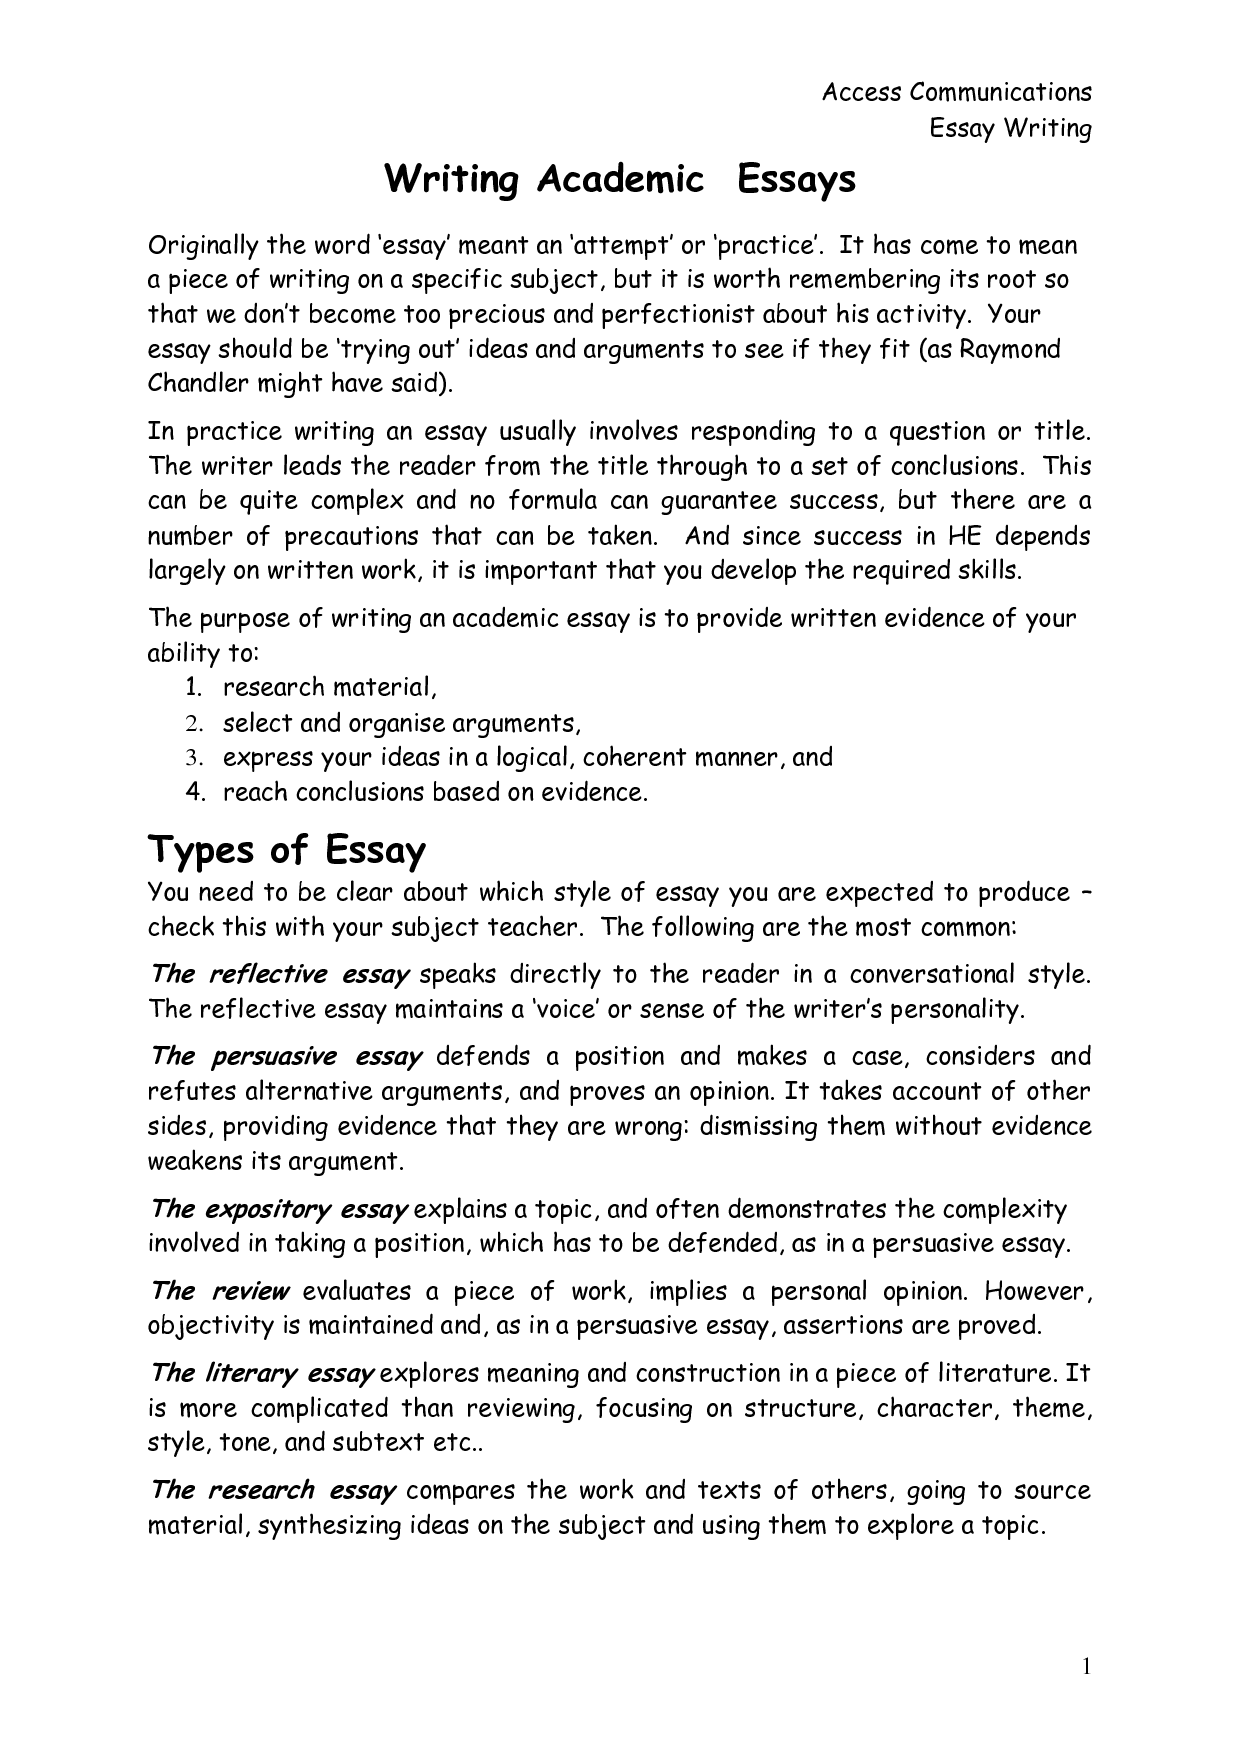 013 Reflective Essay On Academic Writing Englishs Fantastic English Examples Pdf Sqa Higher Personal National 5 Full